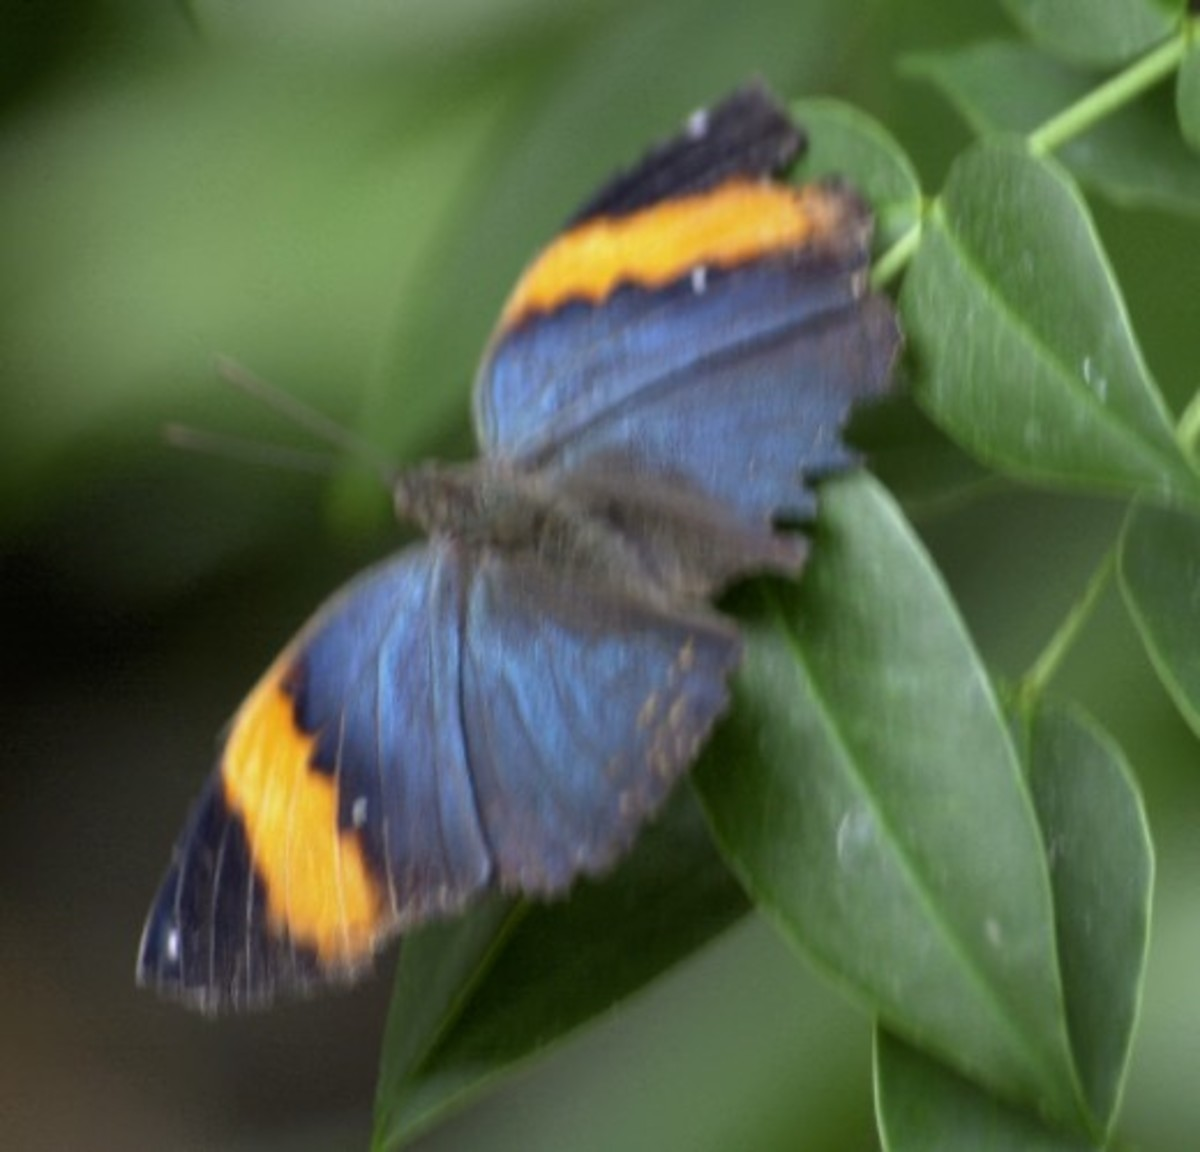 Blue Butterfly with Gold Wingtips